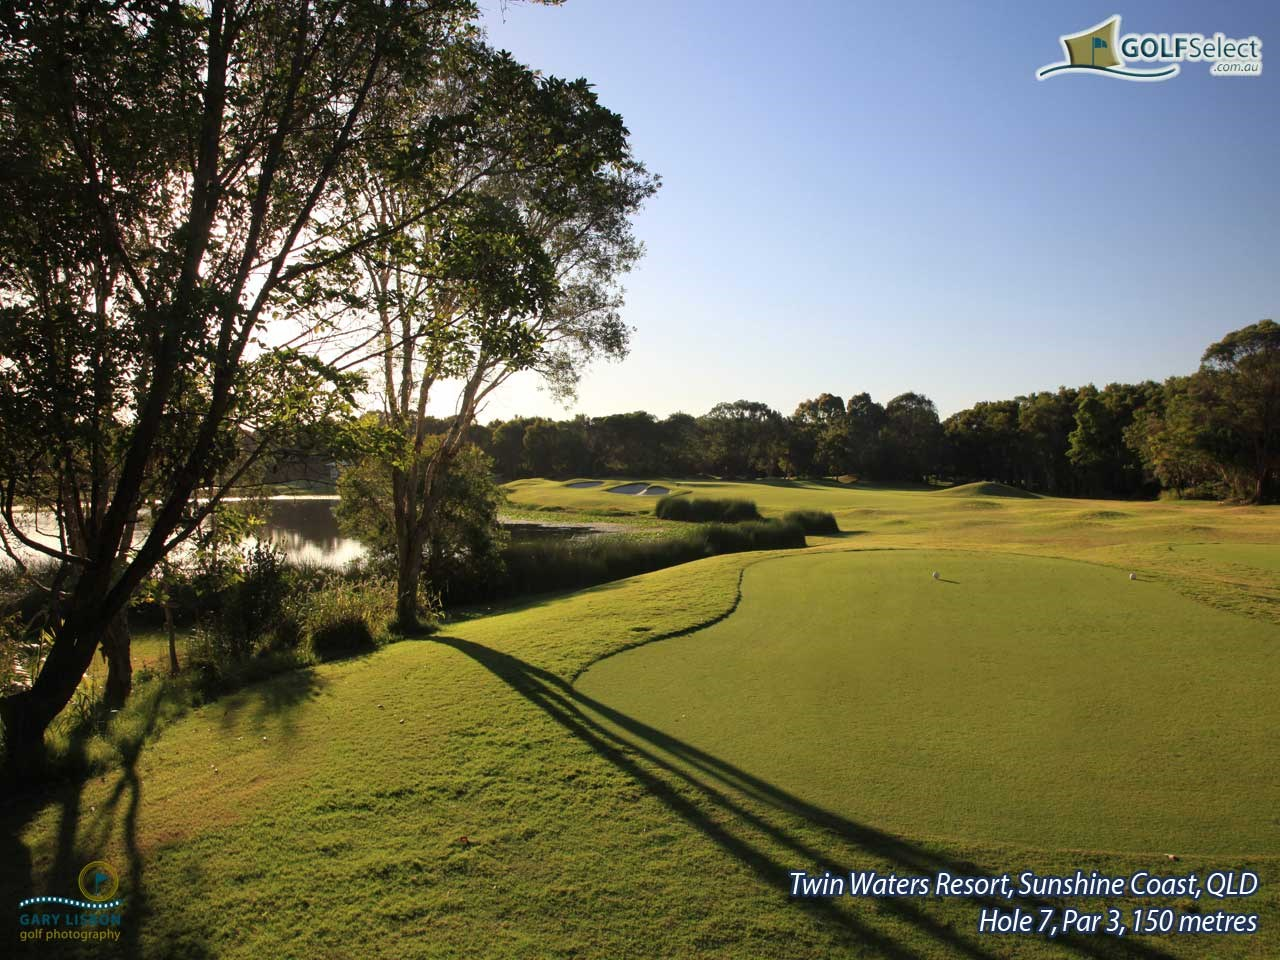 Twin Waters Golf Club Hole 7, Par 3, 150 metres